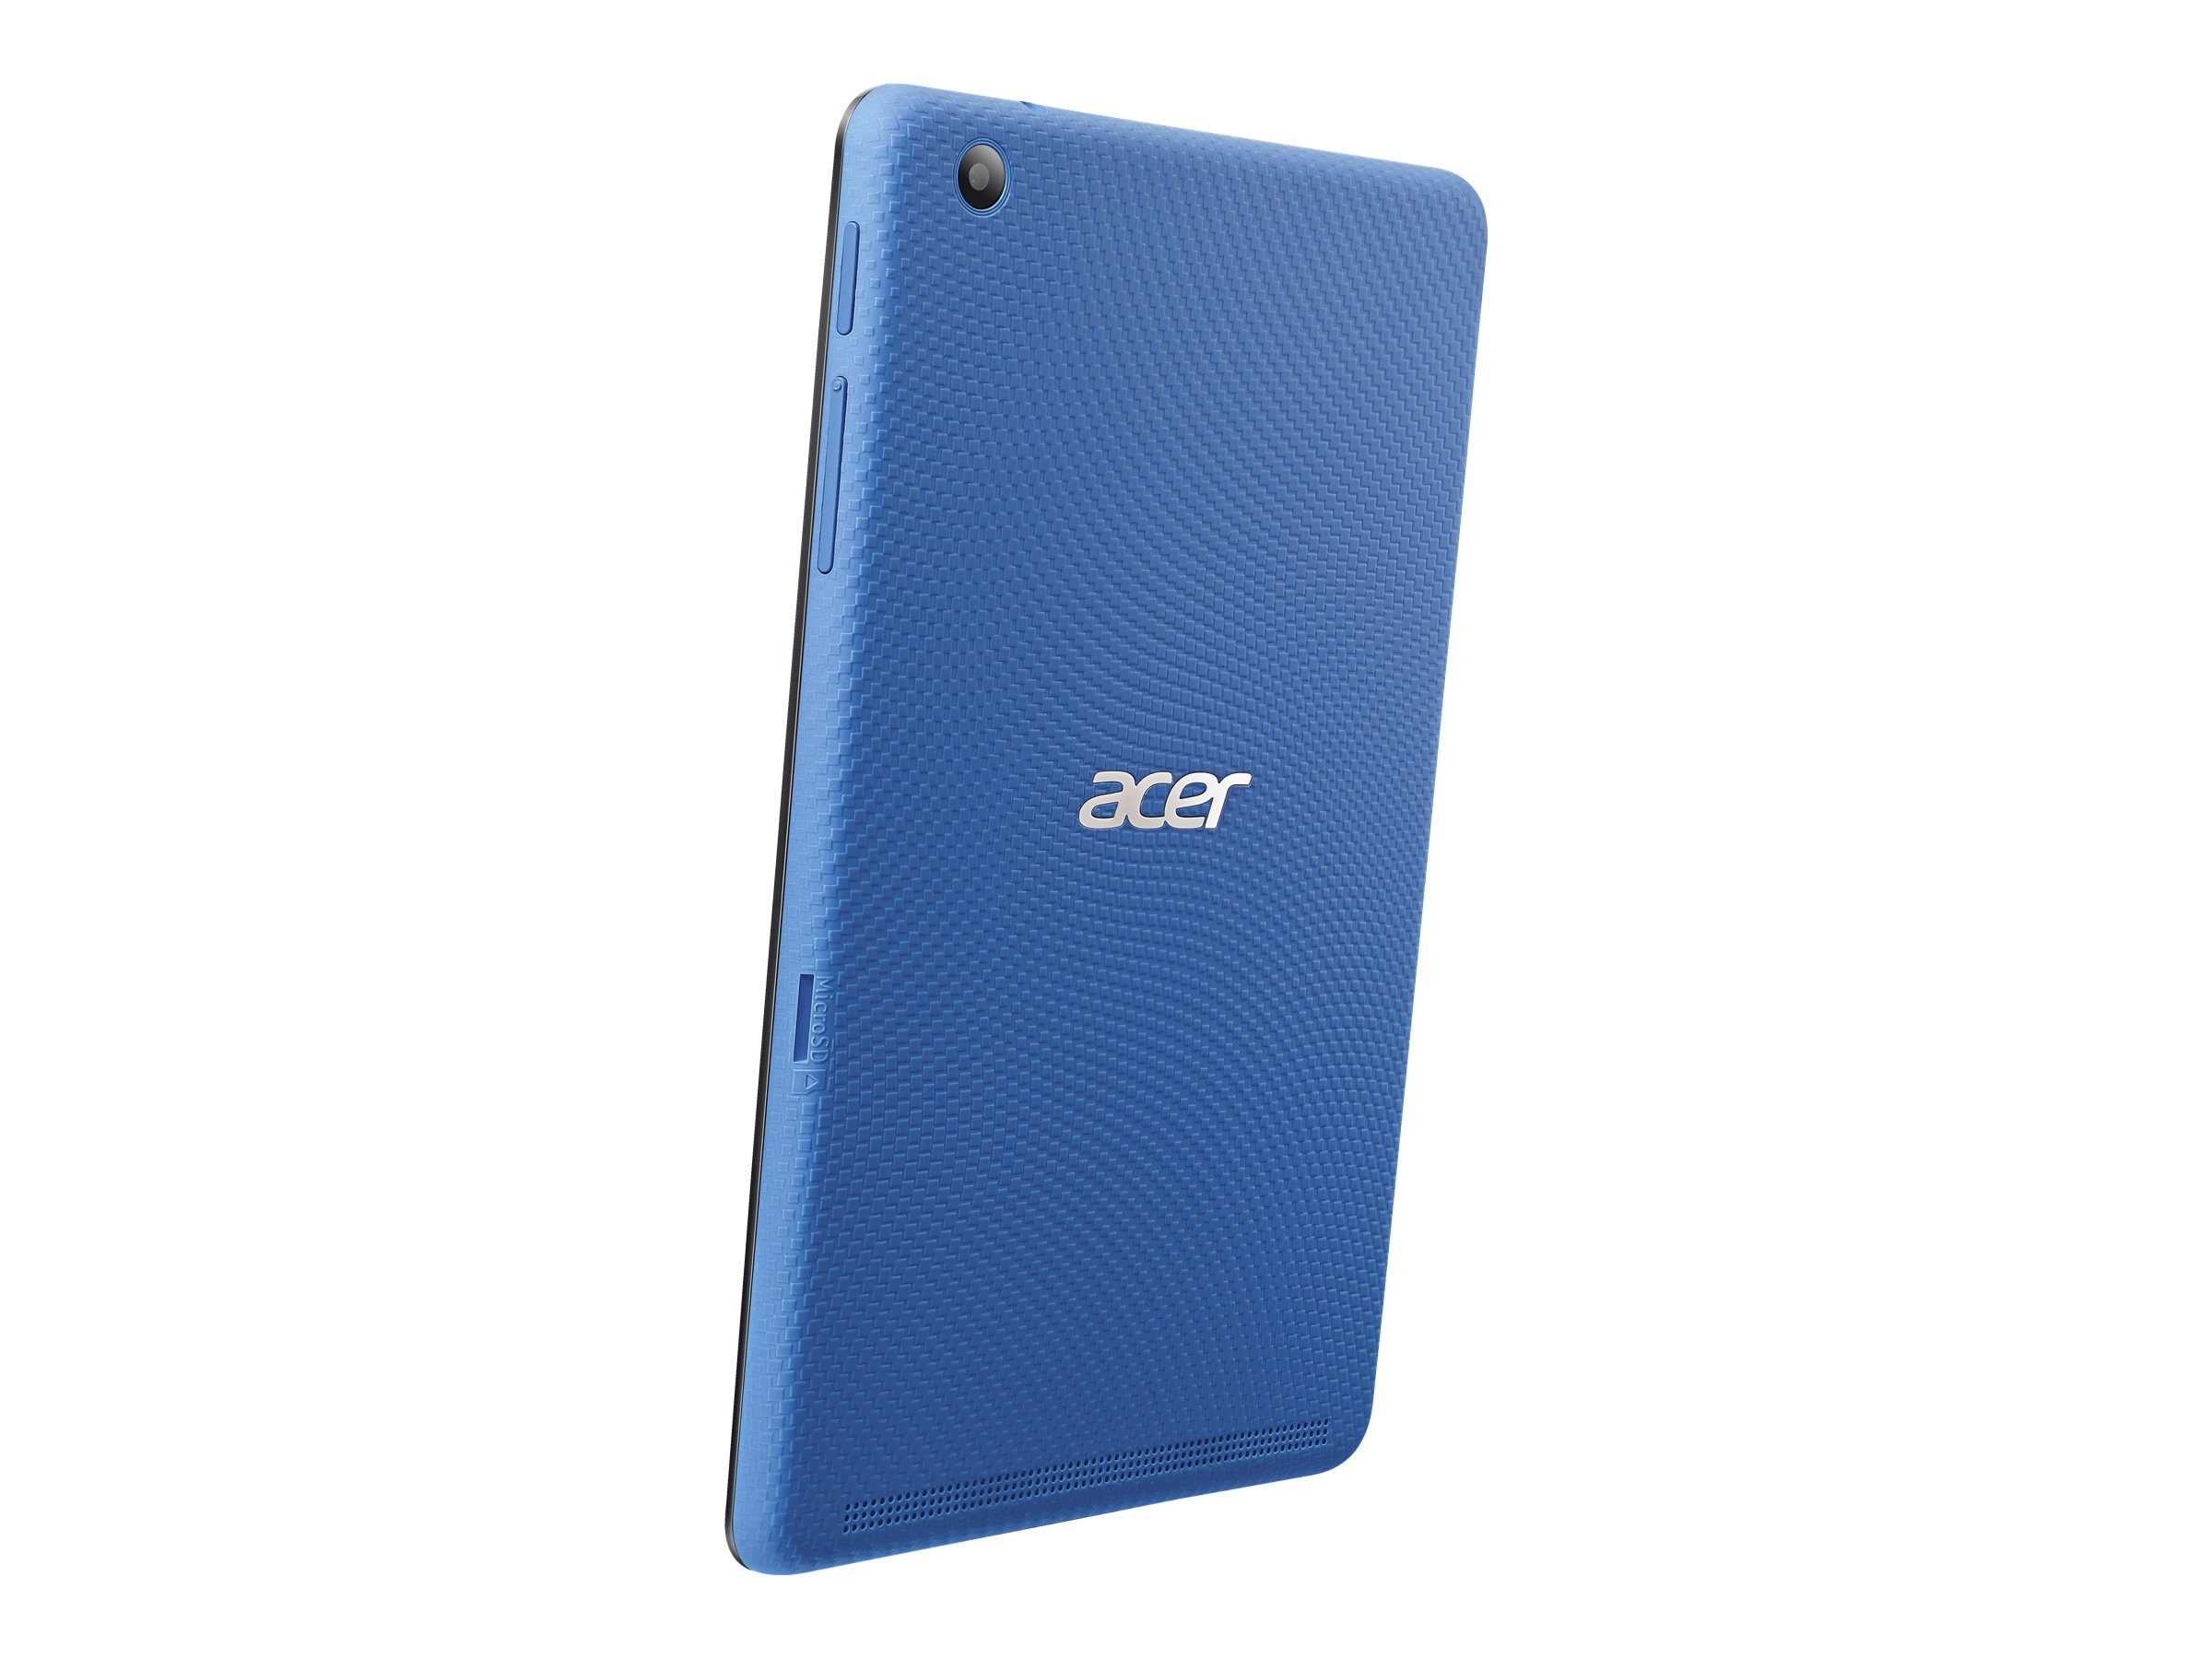 Acer NT.L51AA.001 Image 5